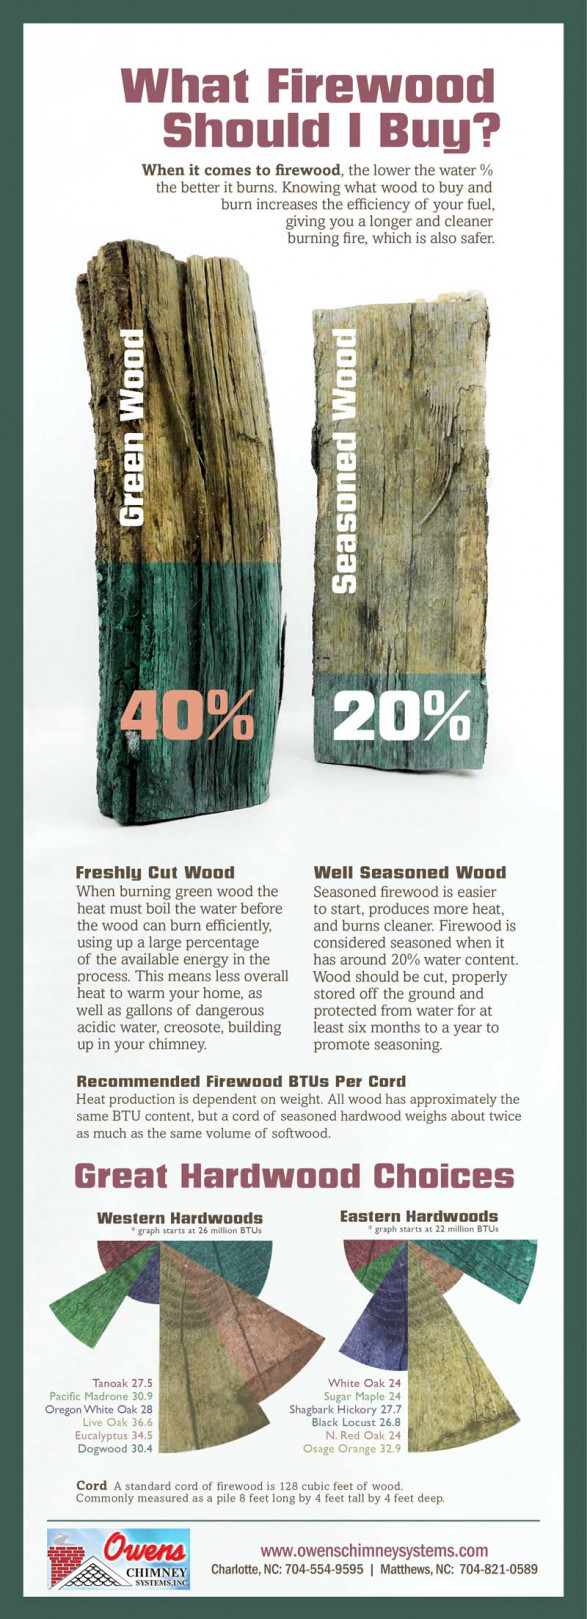 What type of firewood should I buy?